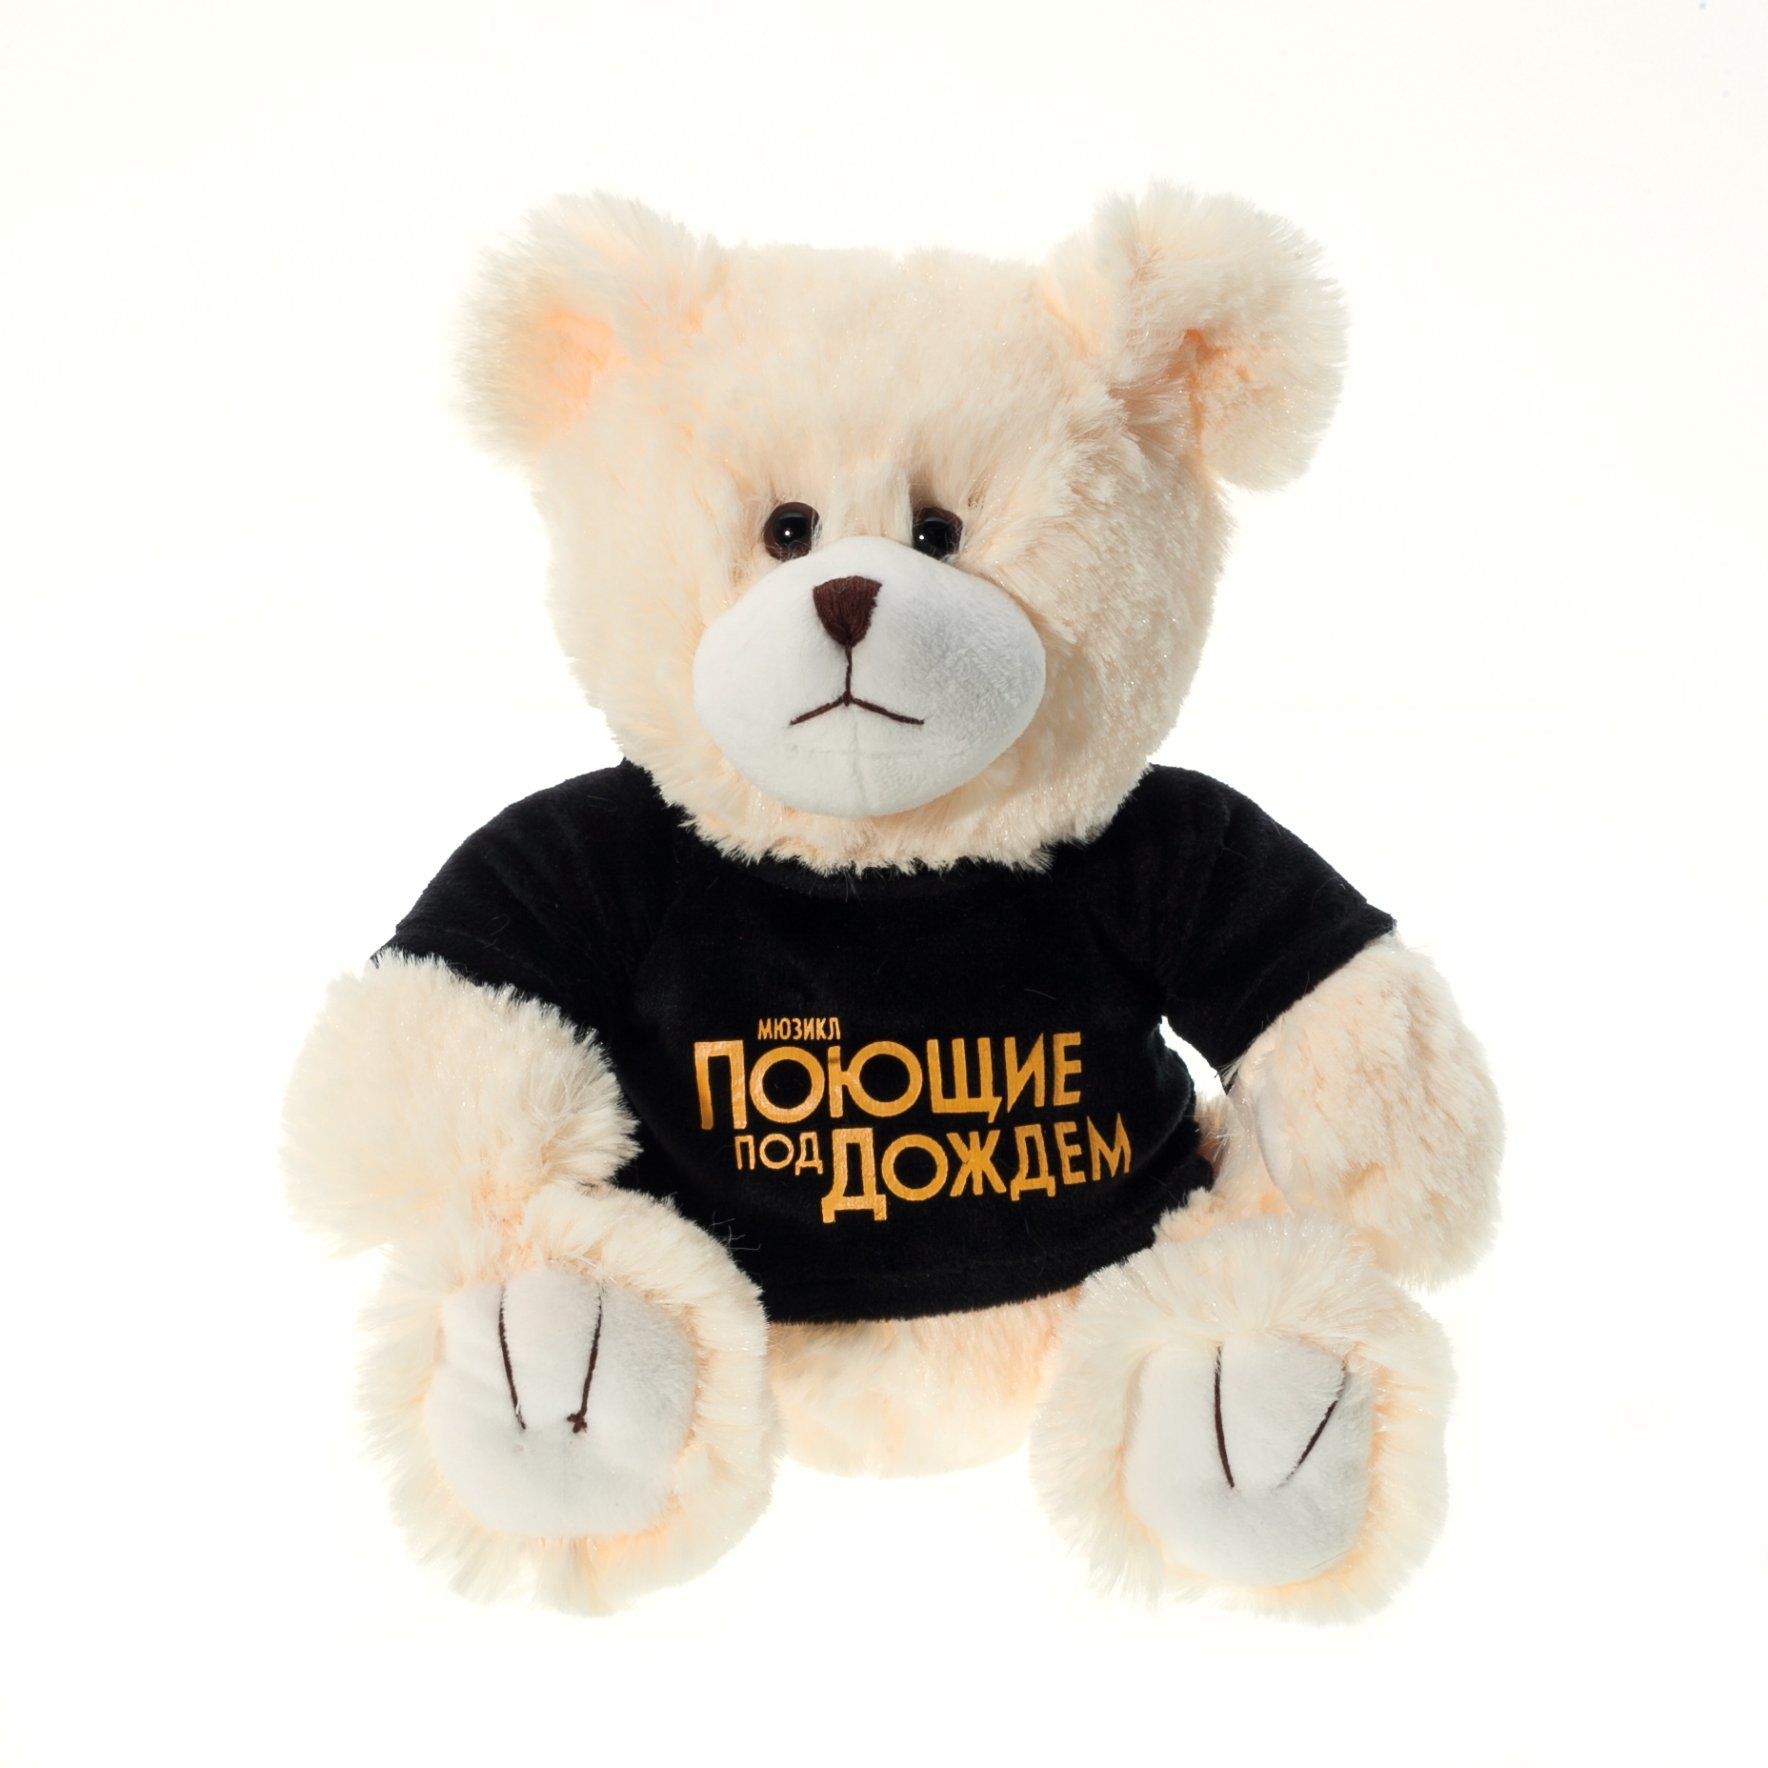 Cuddle Super Soft Plush Toy Teddy Bear